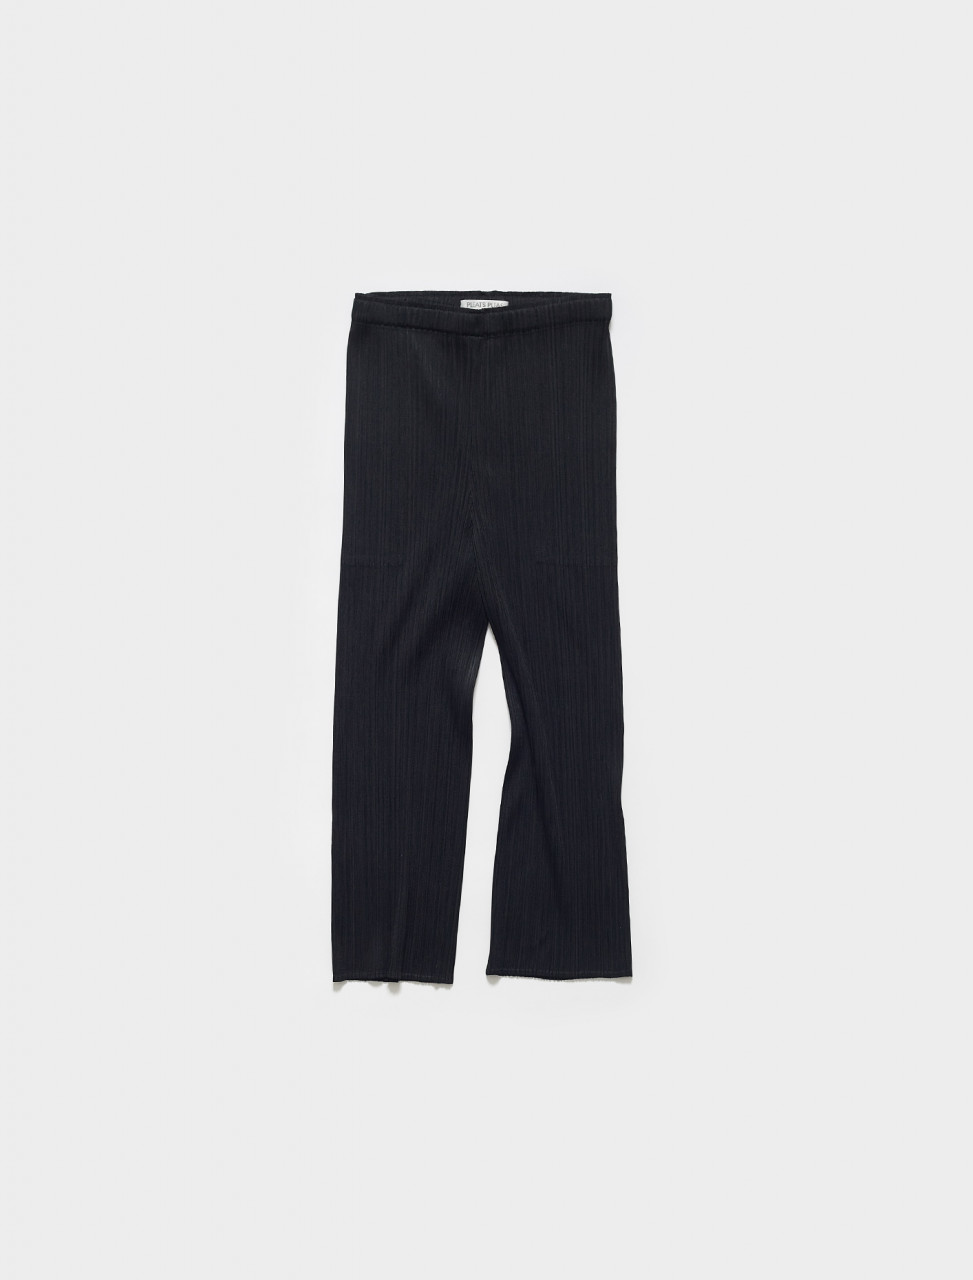 PP16JF110-15 PLEATS PLEASE ISSEY MIYAKE CROPPED PLEATED TROUSERS IN BLACK